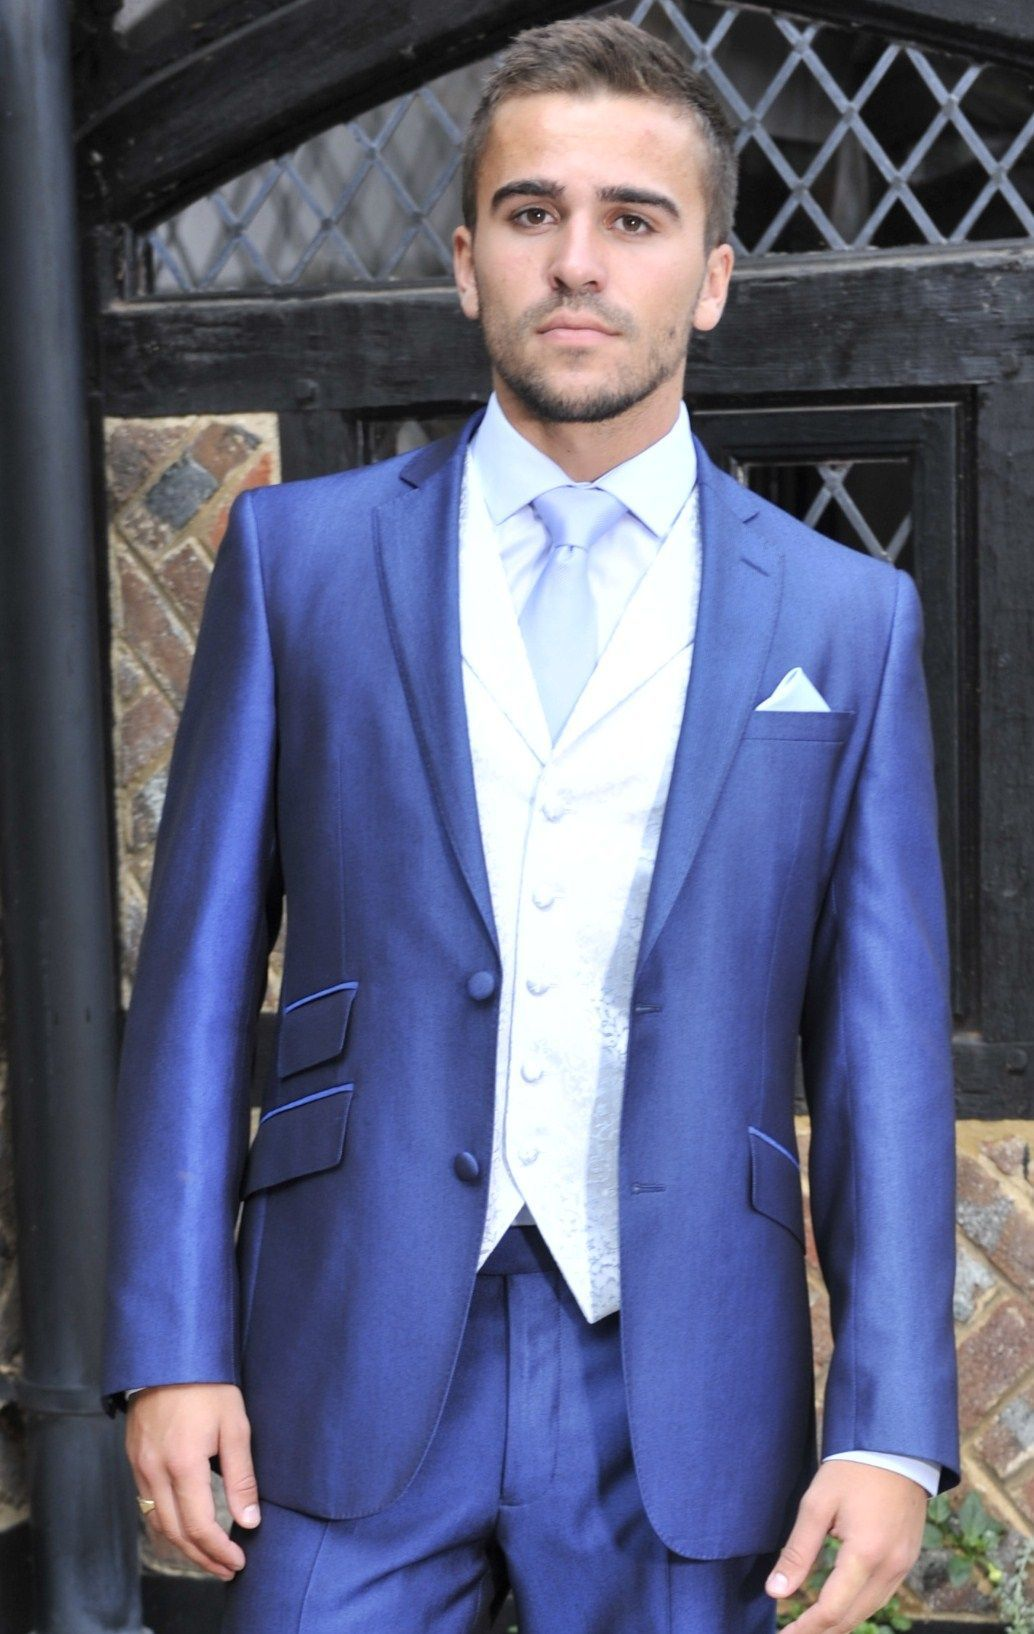 Check Out Wedding Suits For Men Inspiration For Male